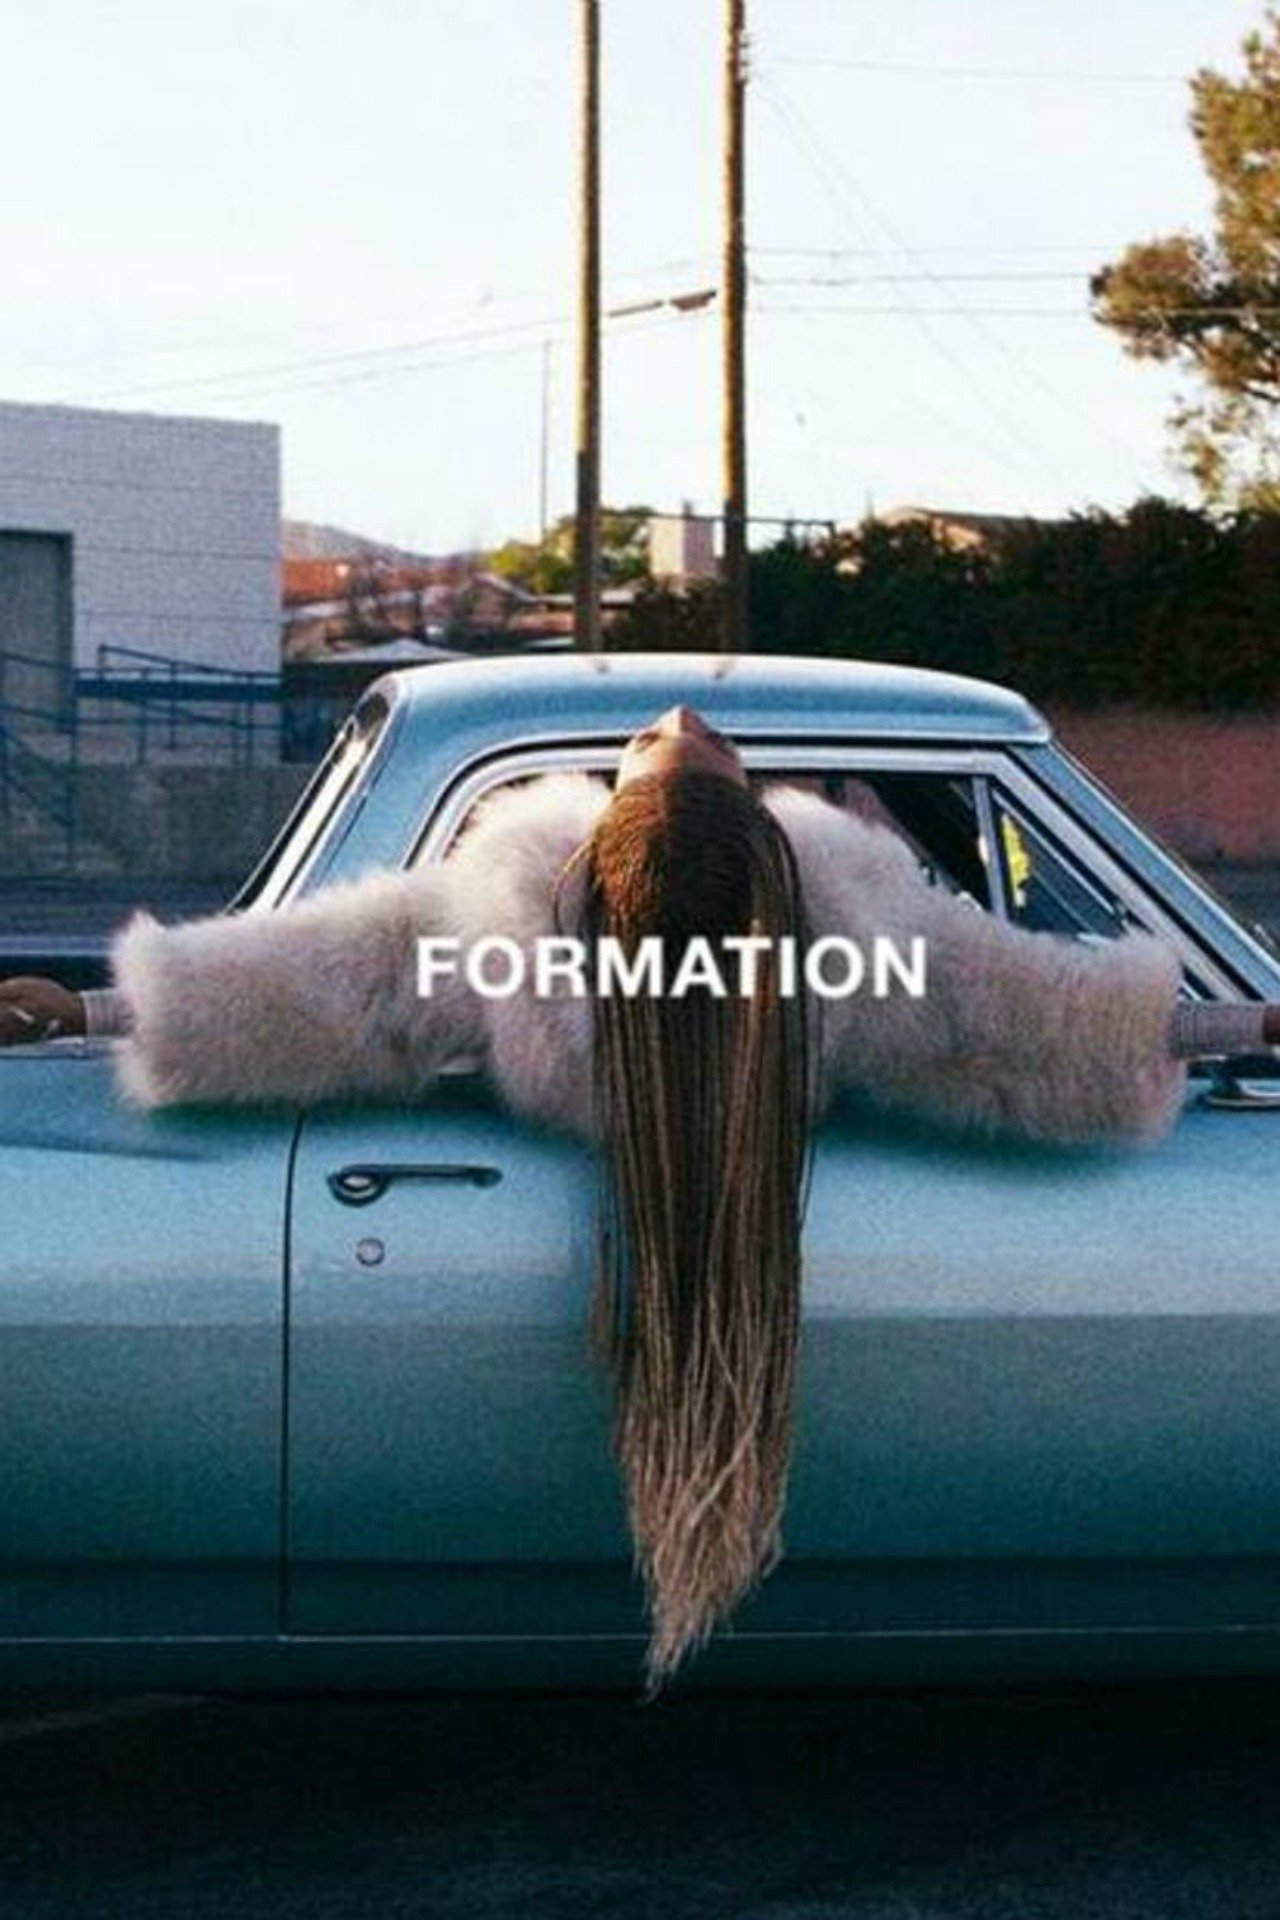 Surprise! New Beyonce song & the video is incredible: https://t.co/PNtimiPtiZ #Formation #Beyonce https://t.co/Tld00gZnSs